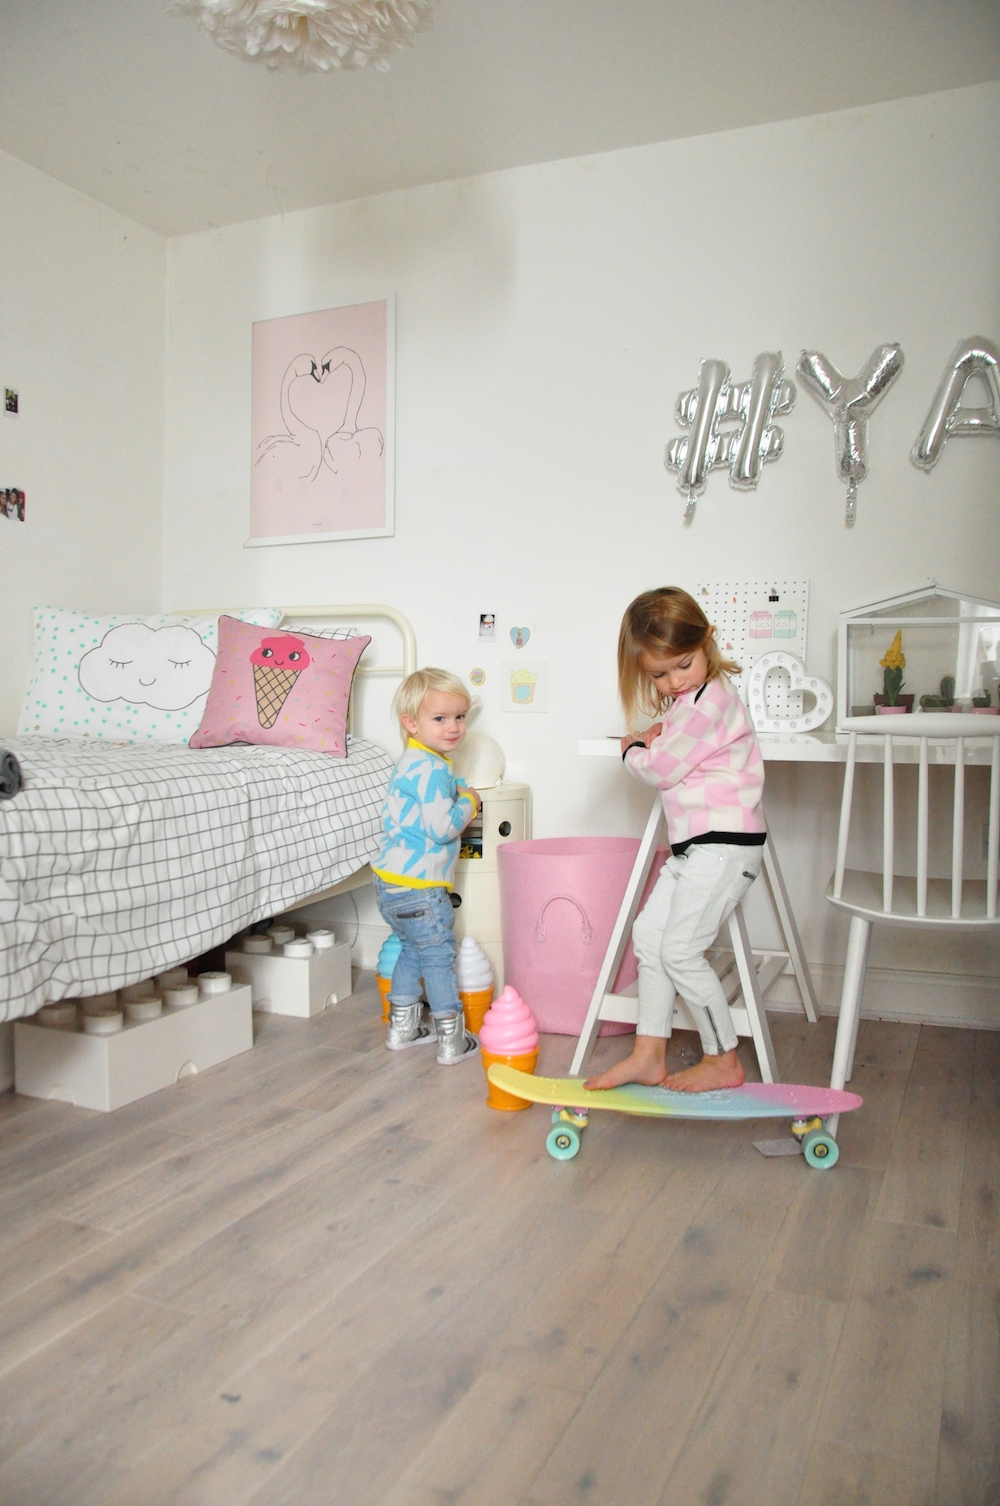 Atelier_child_kids_room_pax_and_hart